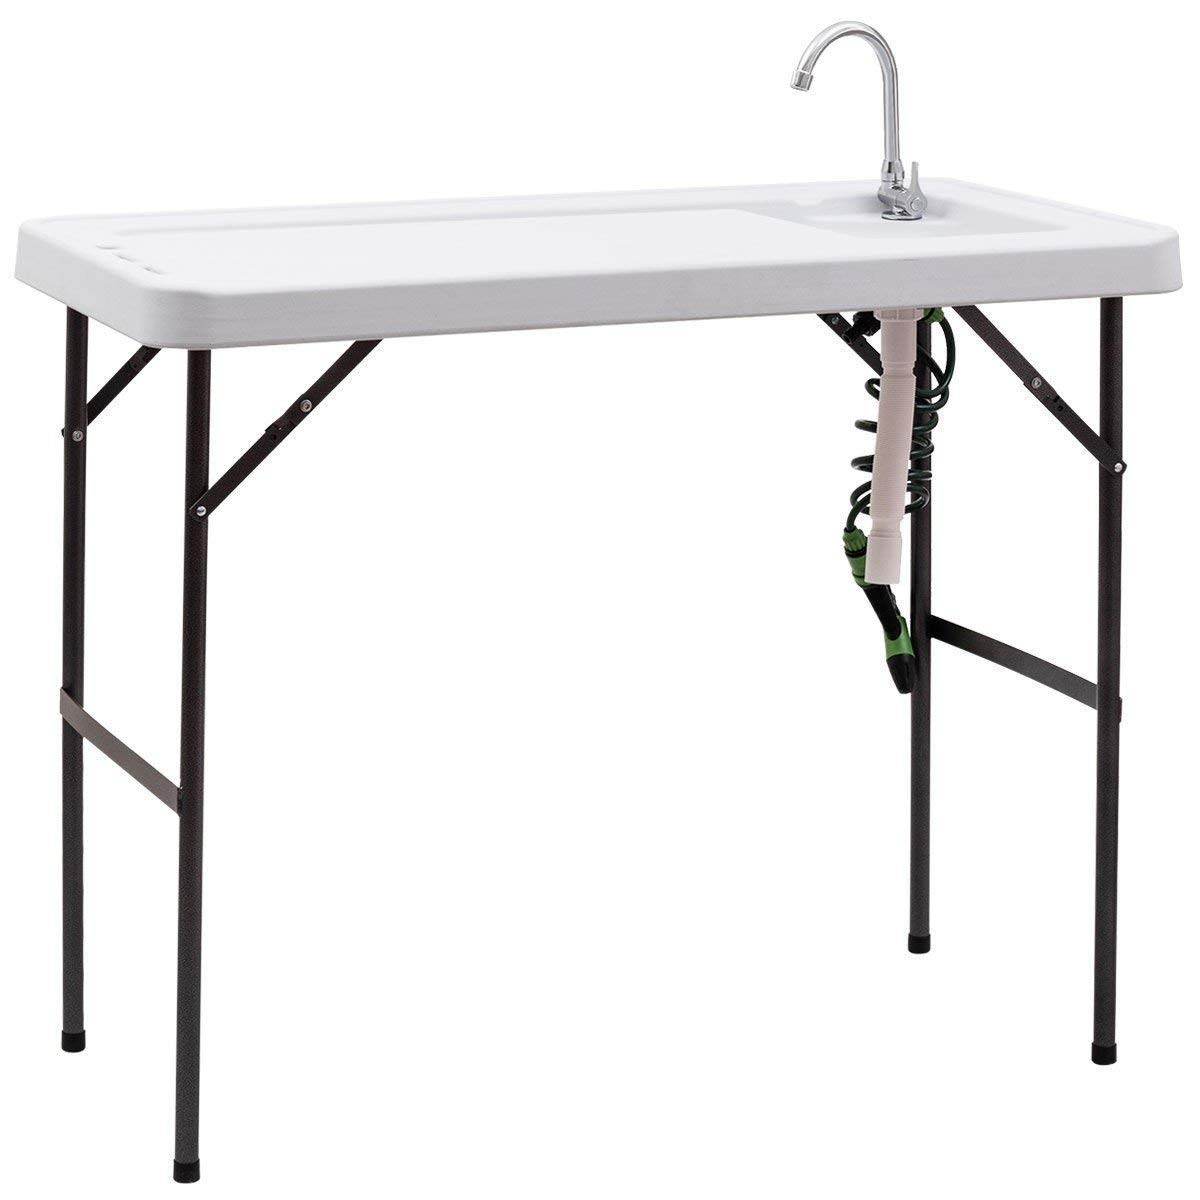 Cheap Fish Cleaning Table Design Find Fish Cleaning Table